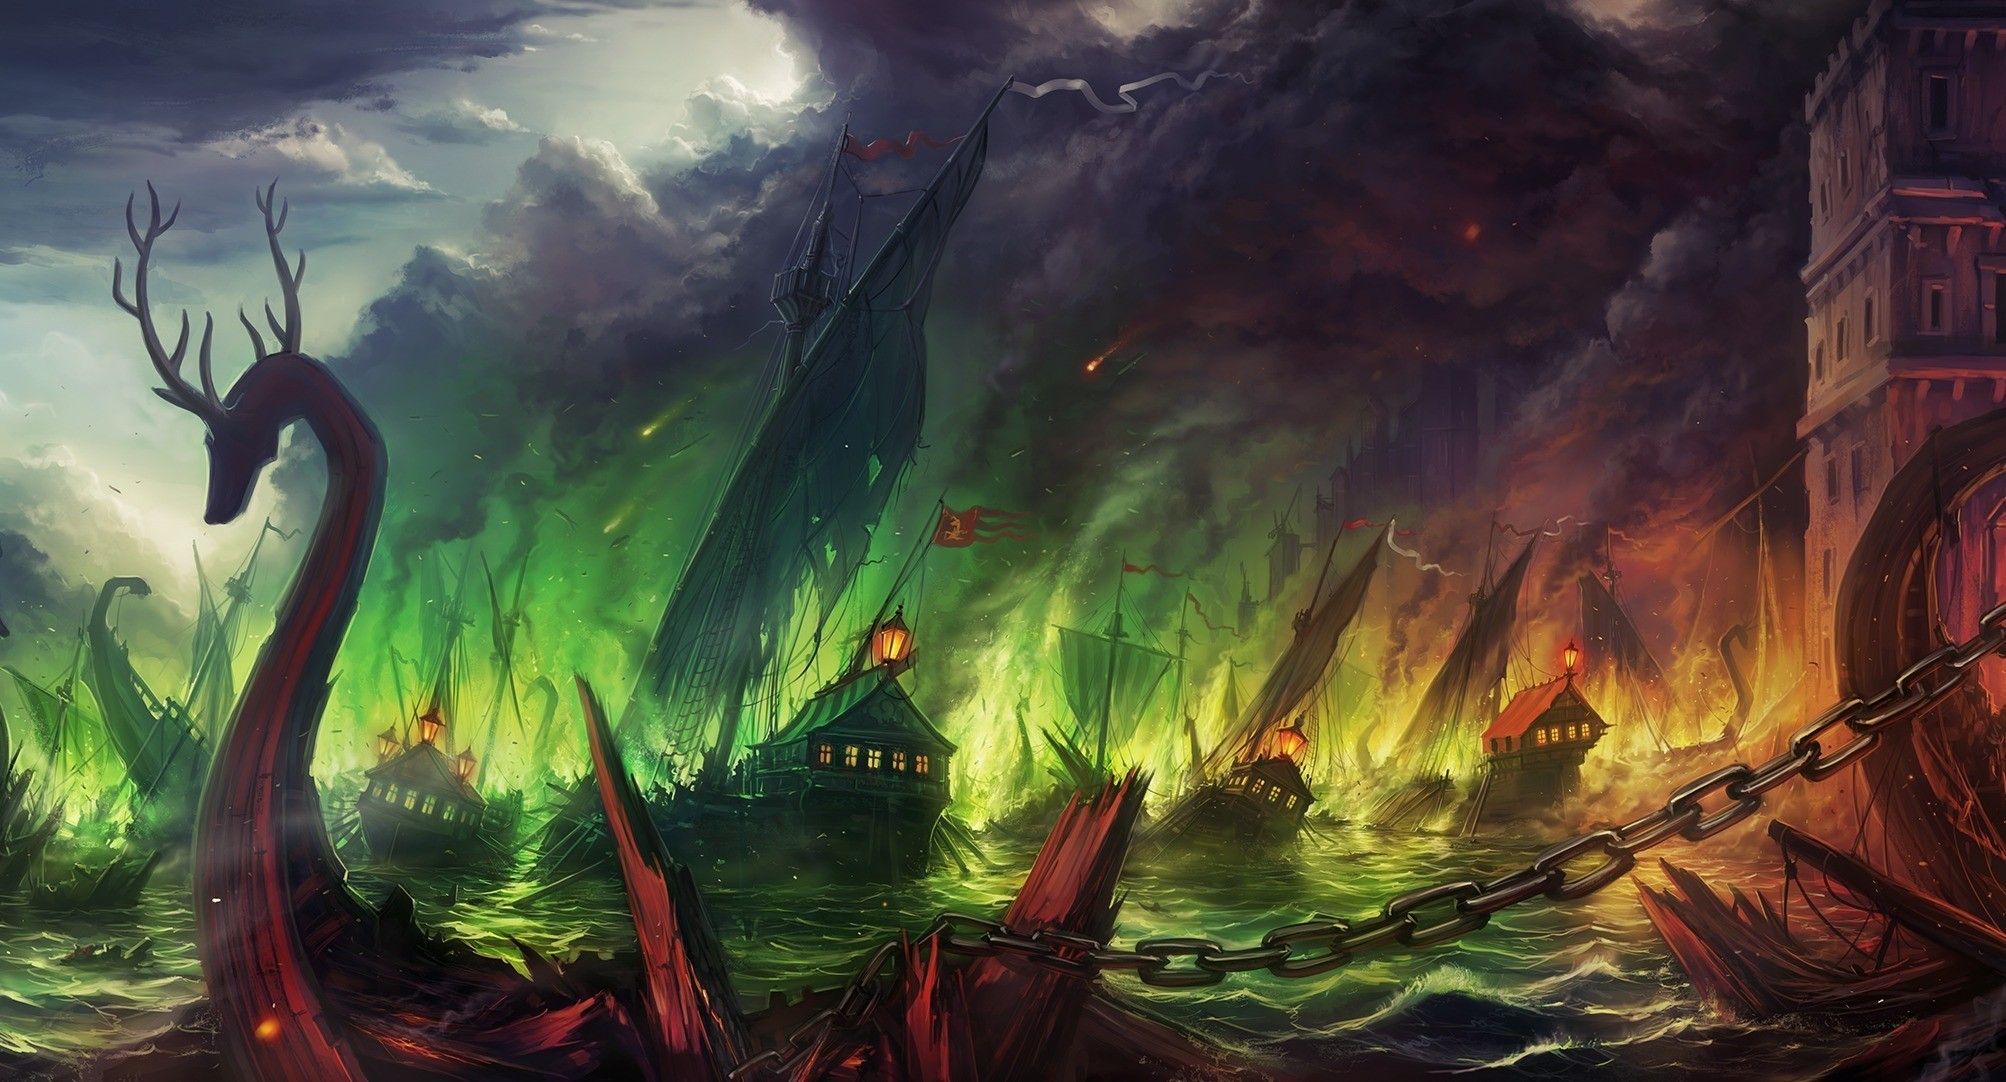 Song of Ice and Fire Painting Wallpaper HD Wallpapers 2006x1082